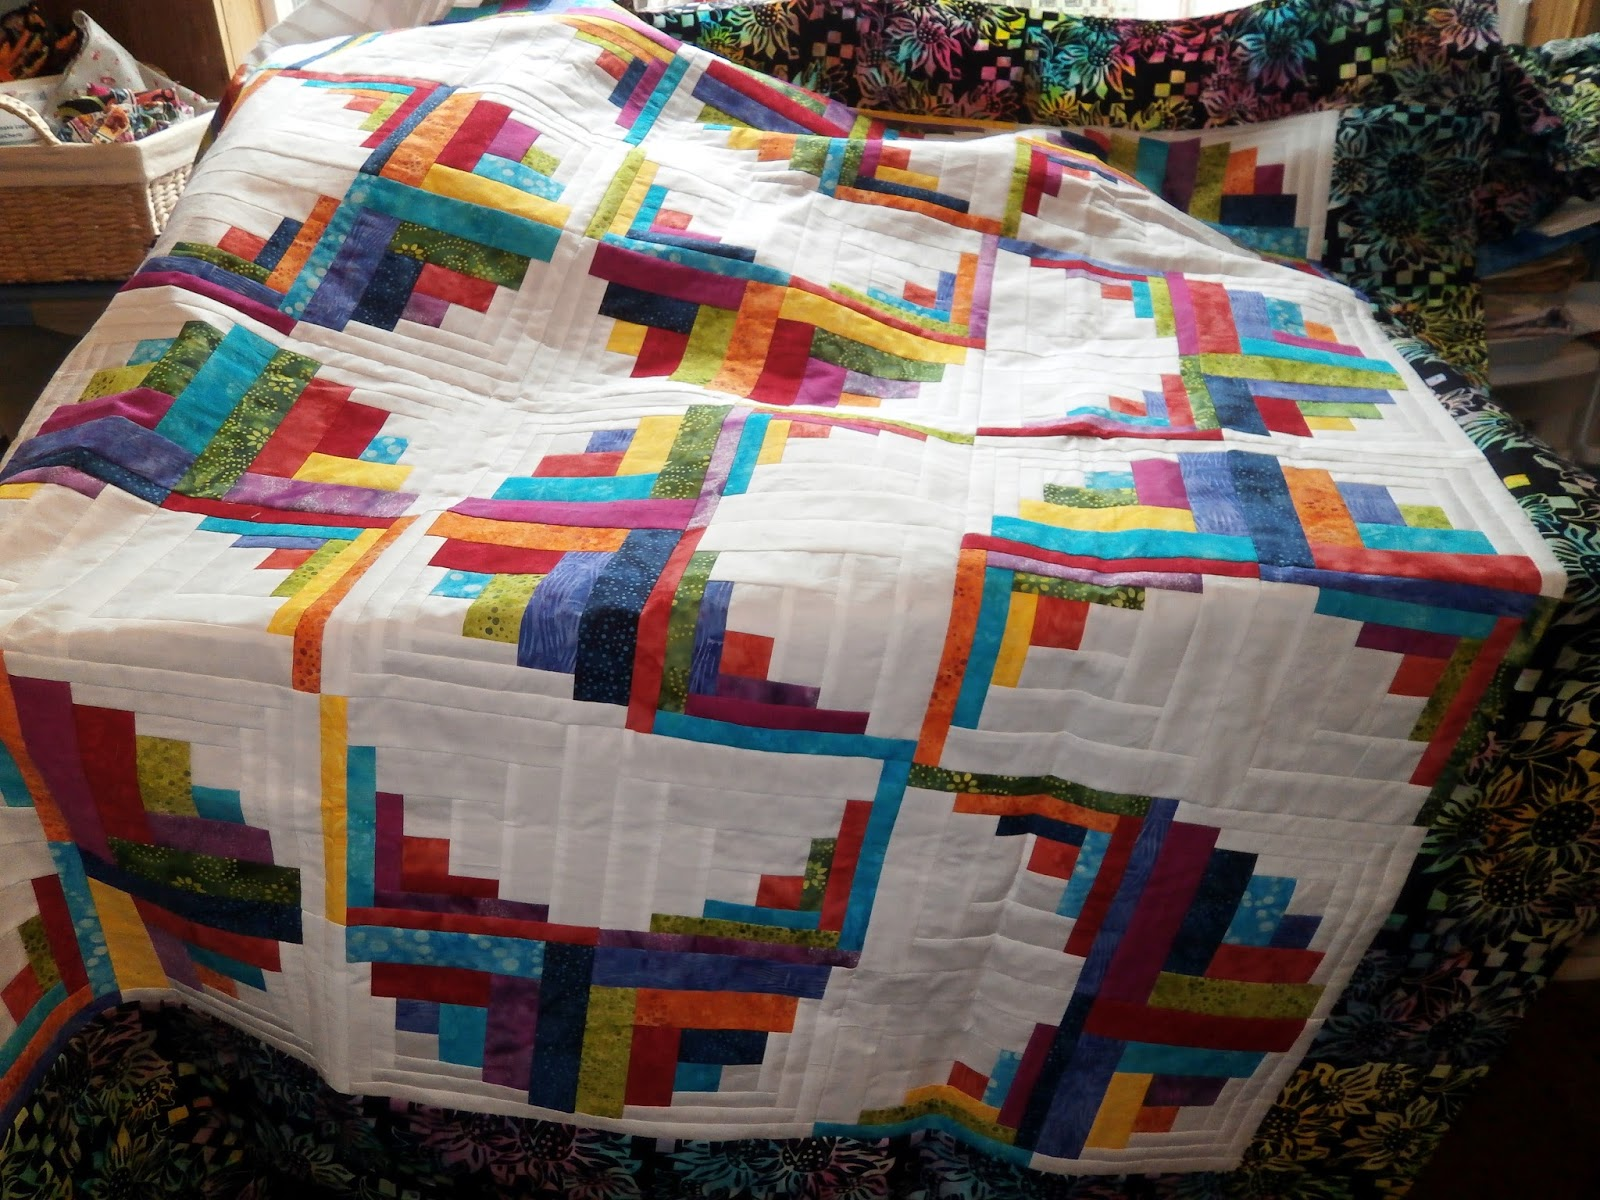 Here Are The Details For The Rainbow Swirls Quilt Top And Another Look At  The Finished Top In What Light I Did Have Yesterday.